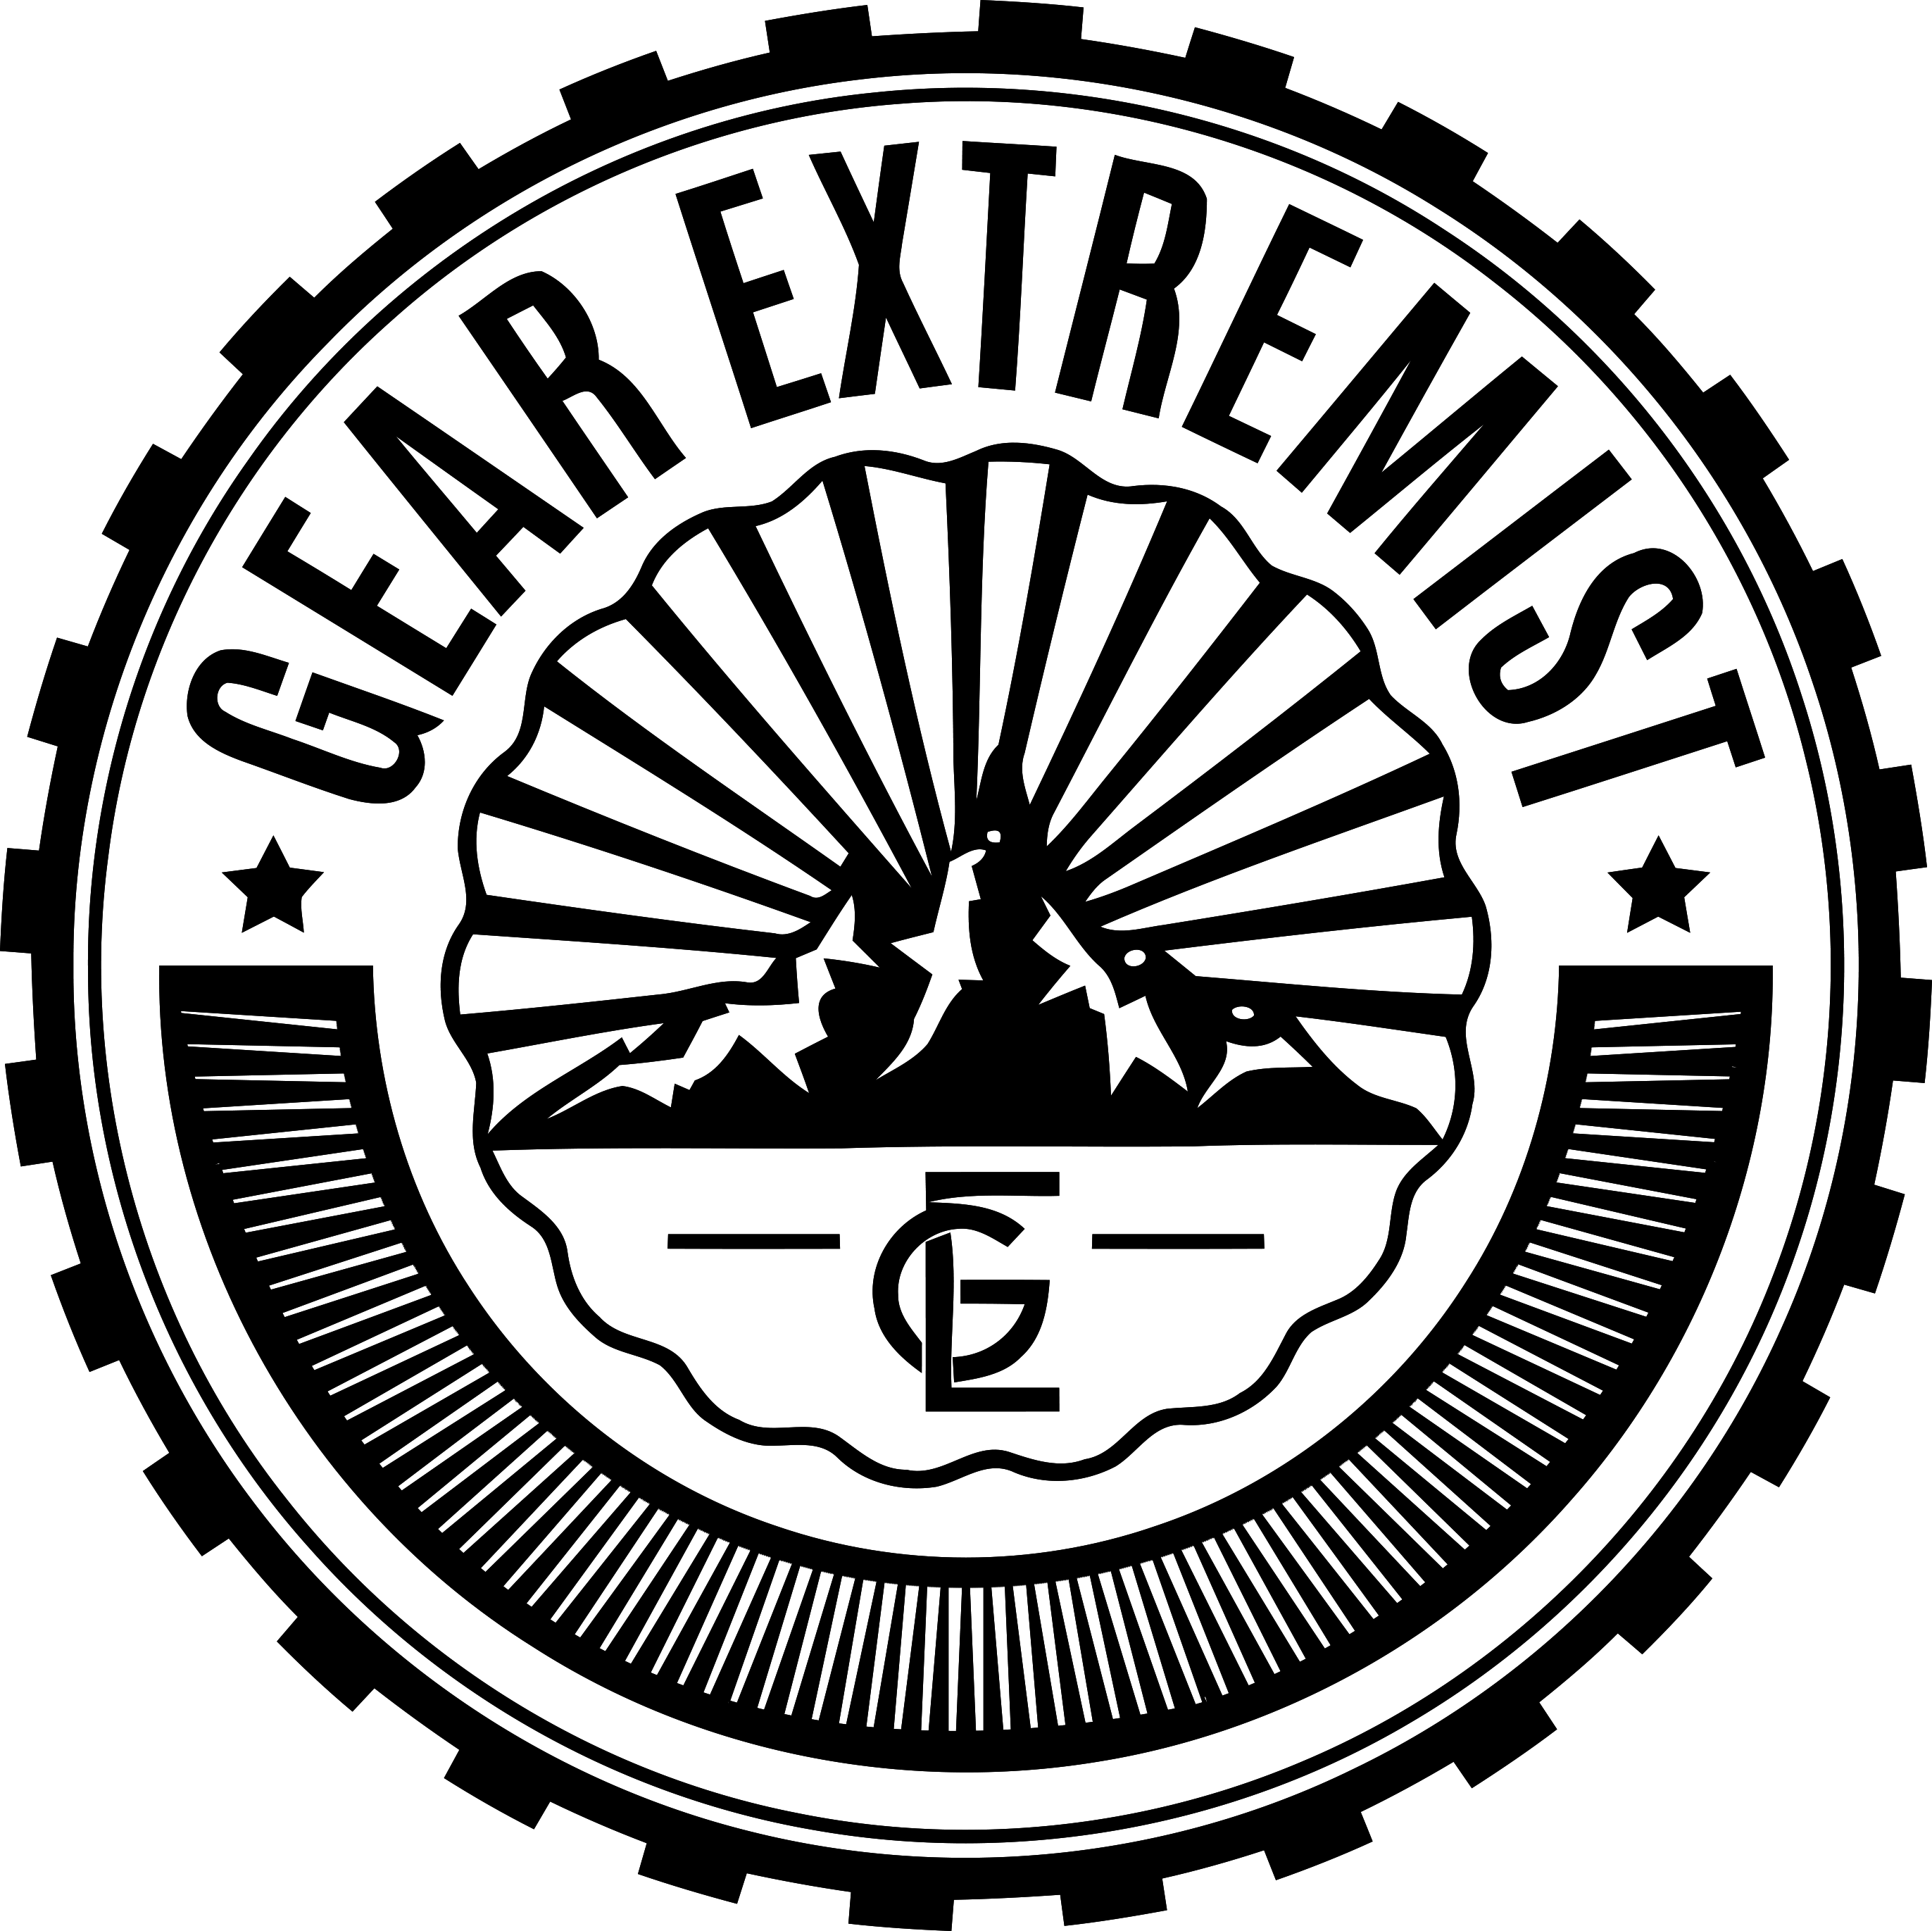 Transparent like father like son clipart - Gear Extremist - Best Practice Stamp